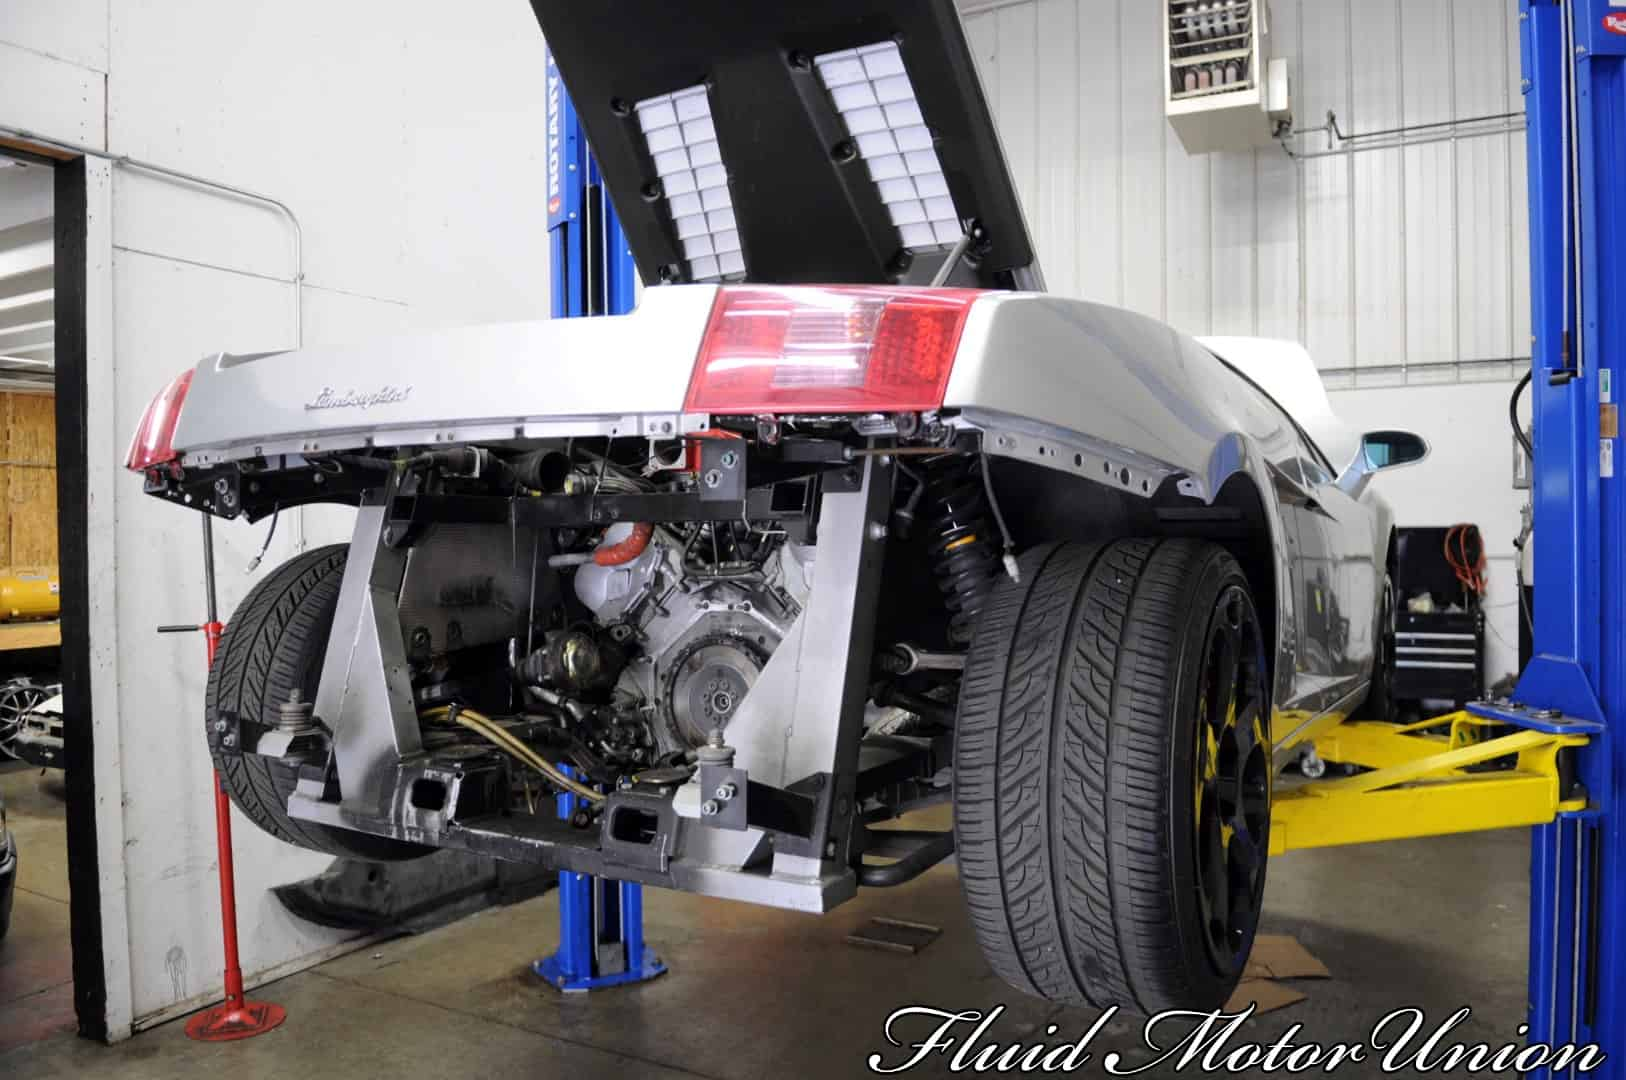 2 04 Lamborghi Gallardo silver bumper removal  6 speed clutch replacement and repair chicago lamborghini